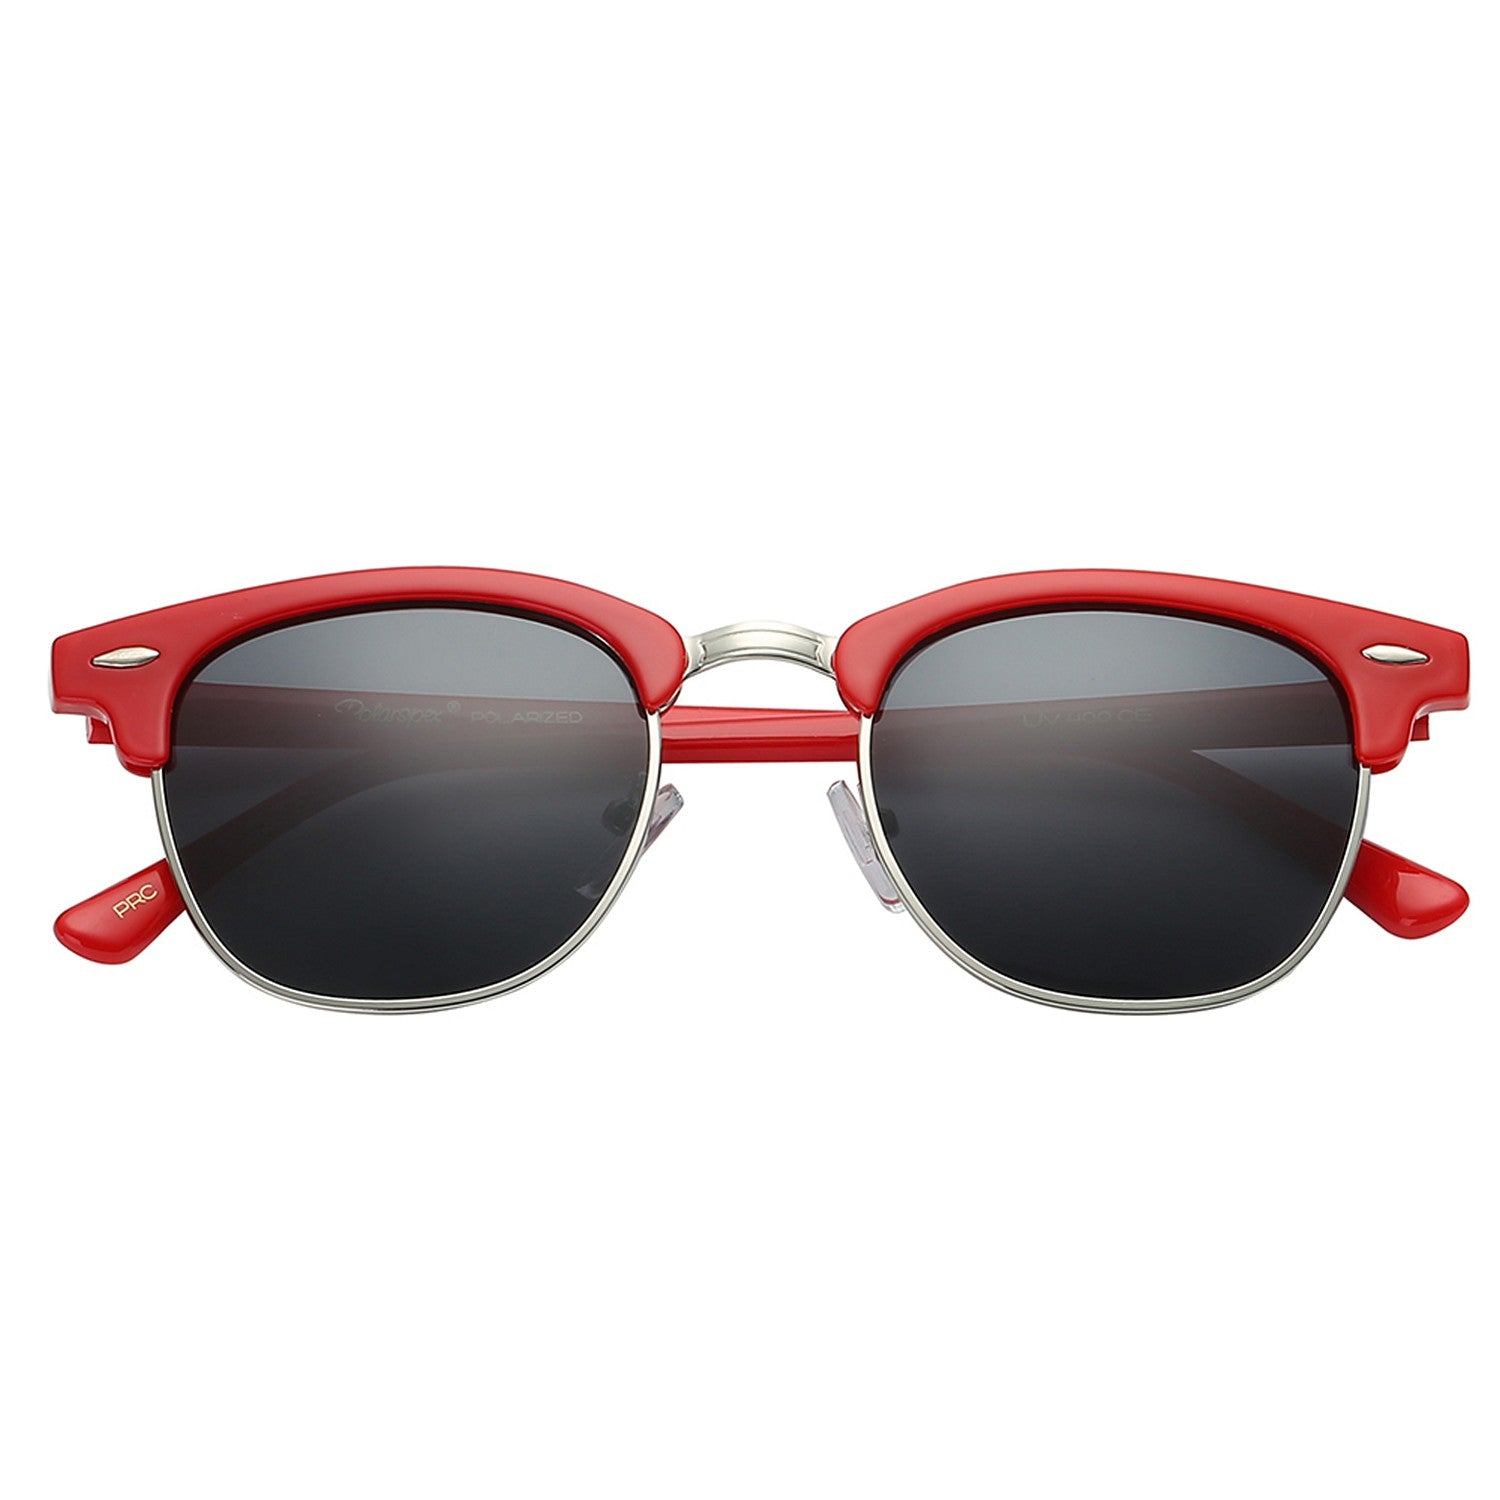 Polarspex Polarized Malcom Half Frame Semi-Rimless Style Unisex Sunglasses with Scarlet Red Frames and Smoke Lenses